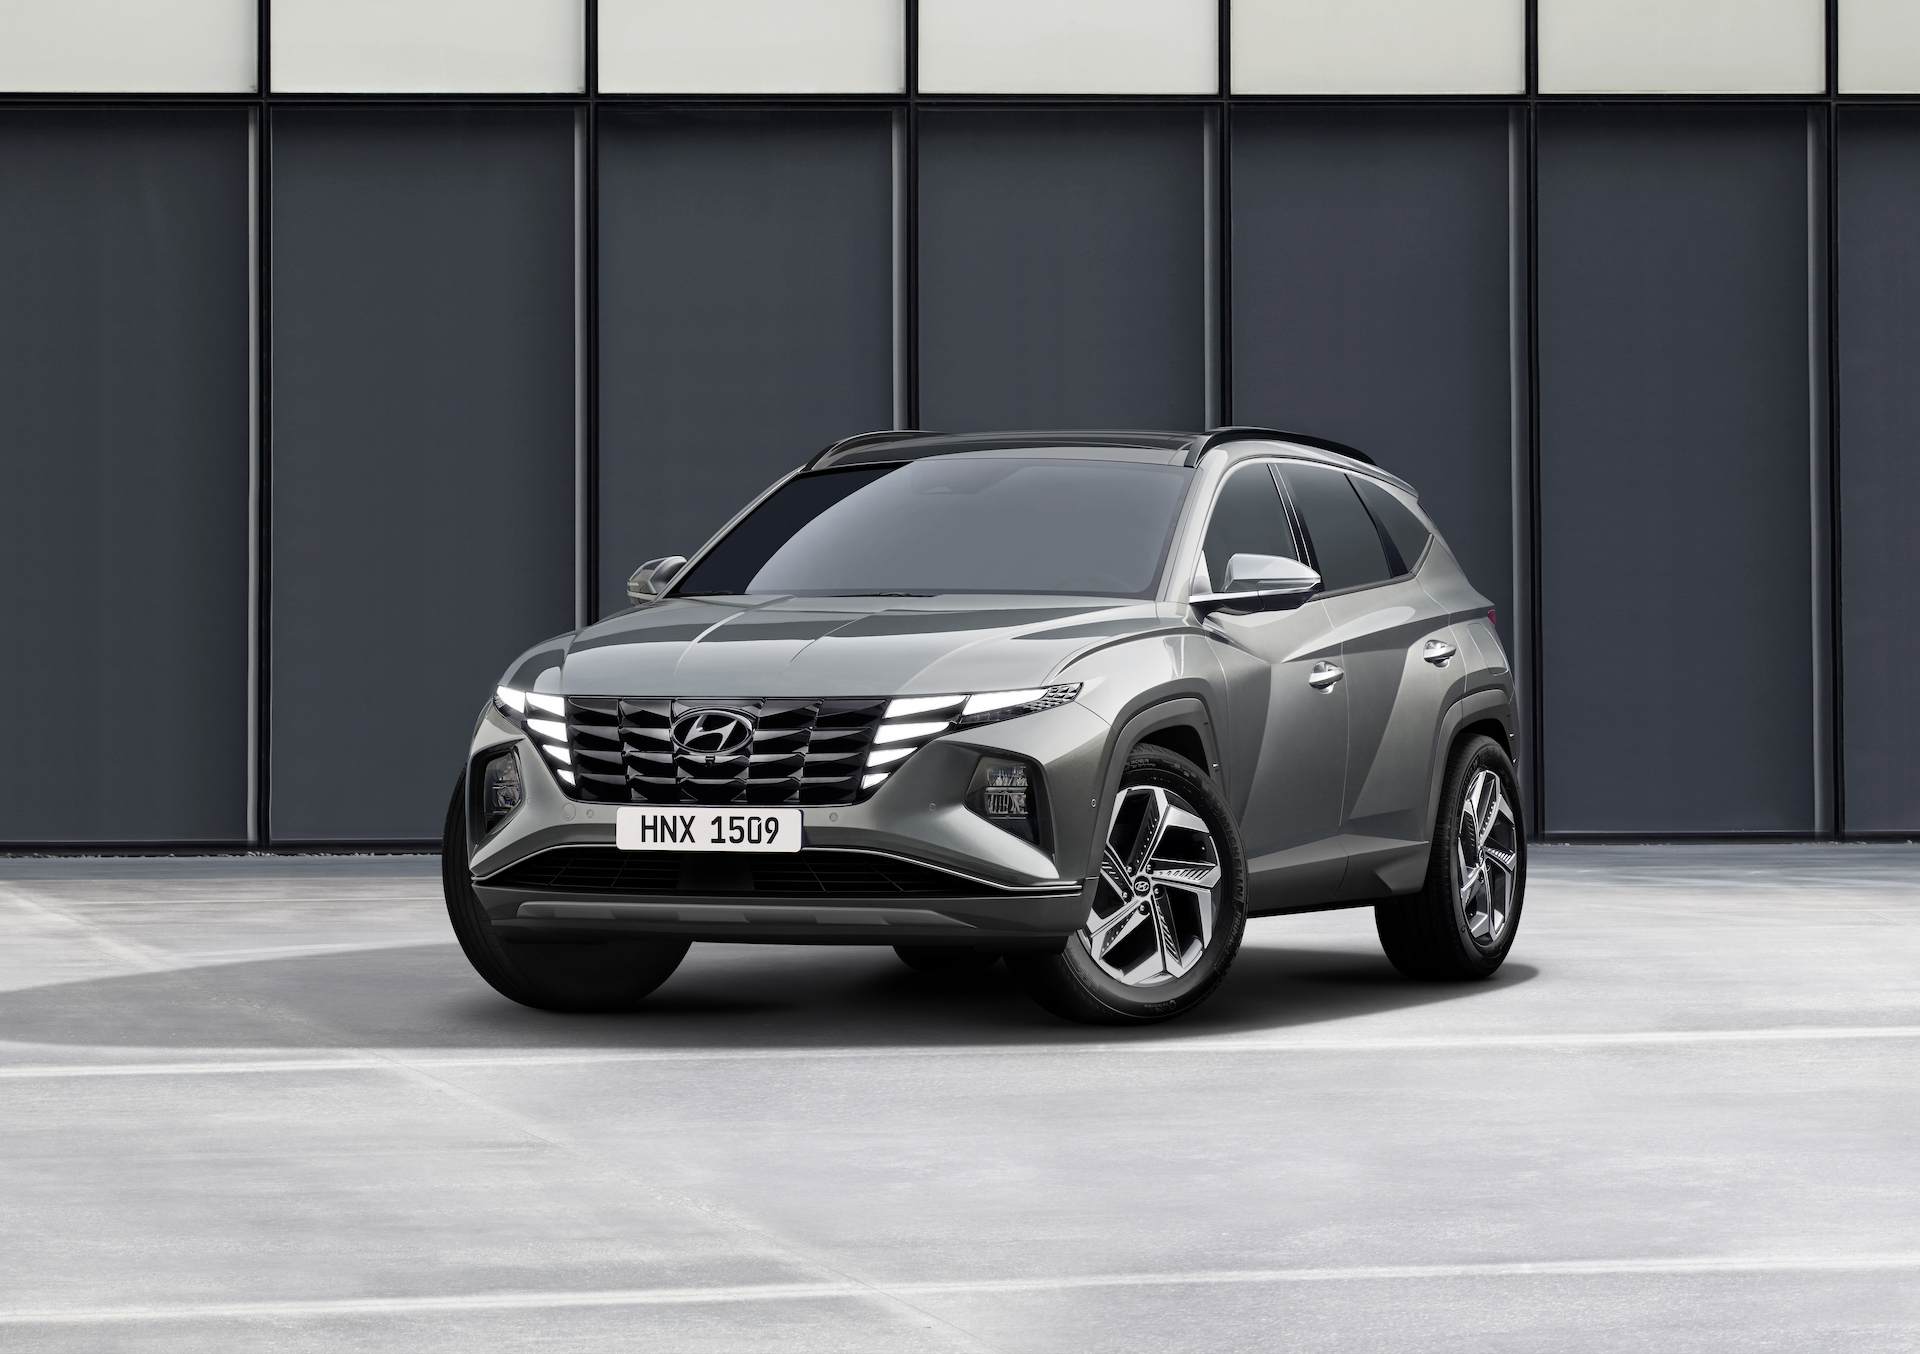 Preview: 2022 Hyundai Tucson goes long, deep on screens, style